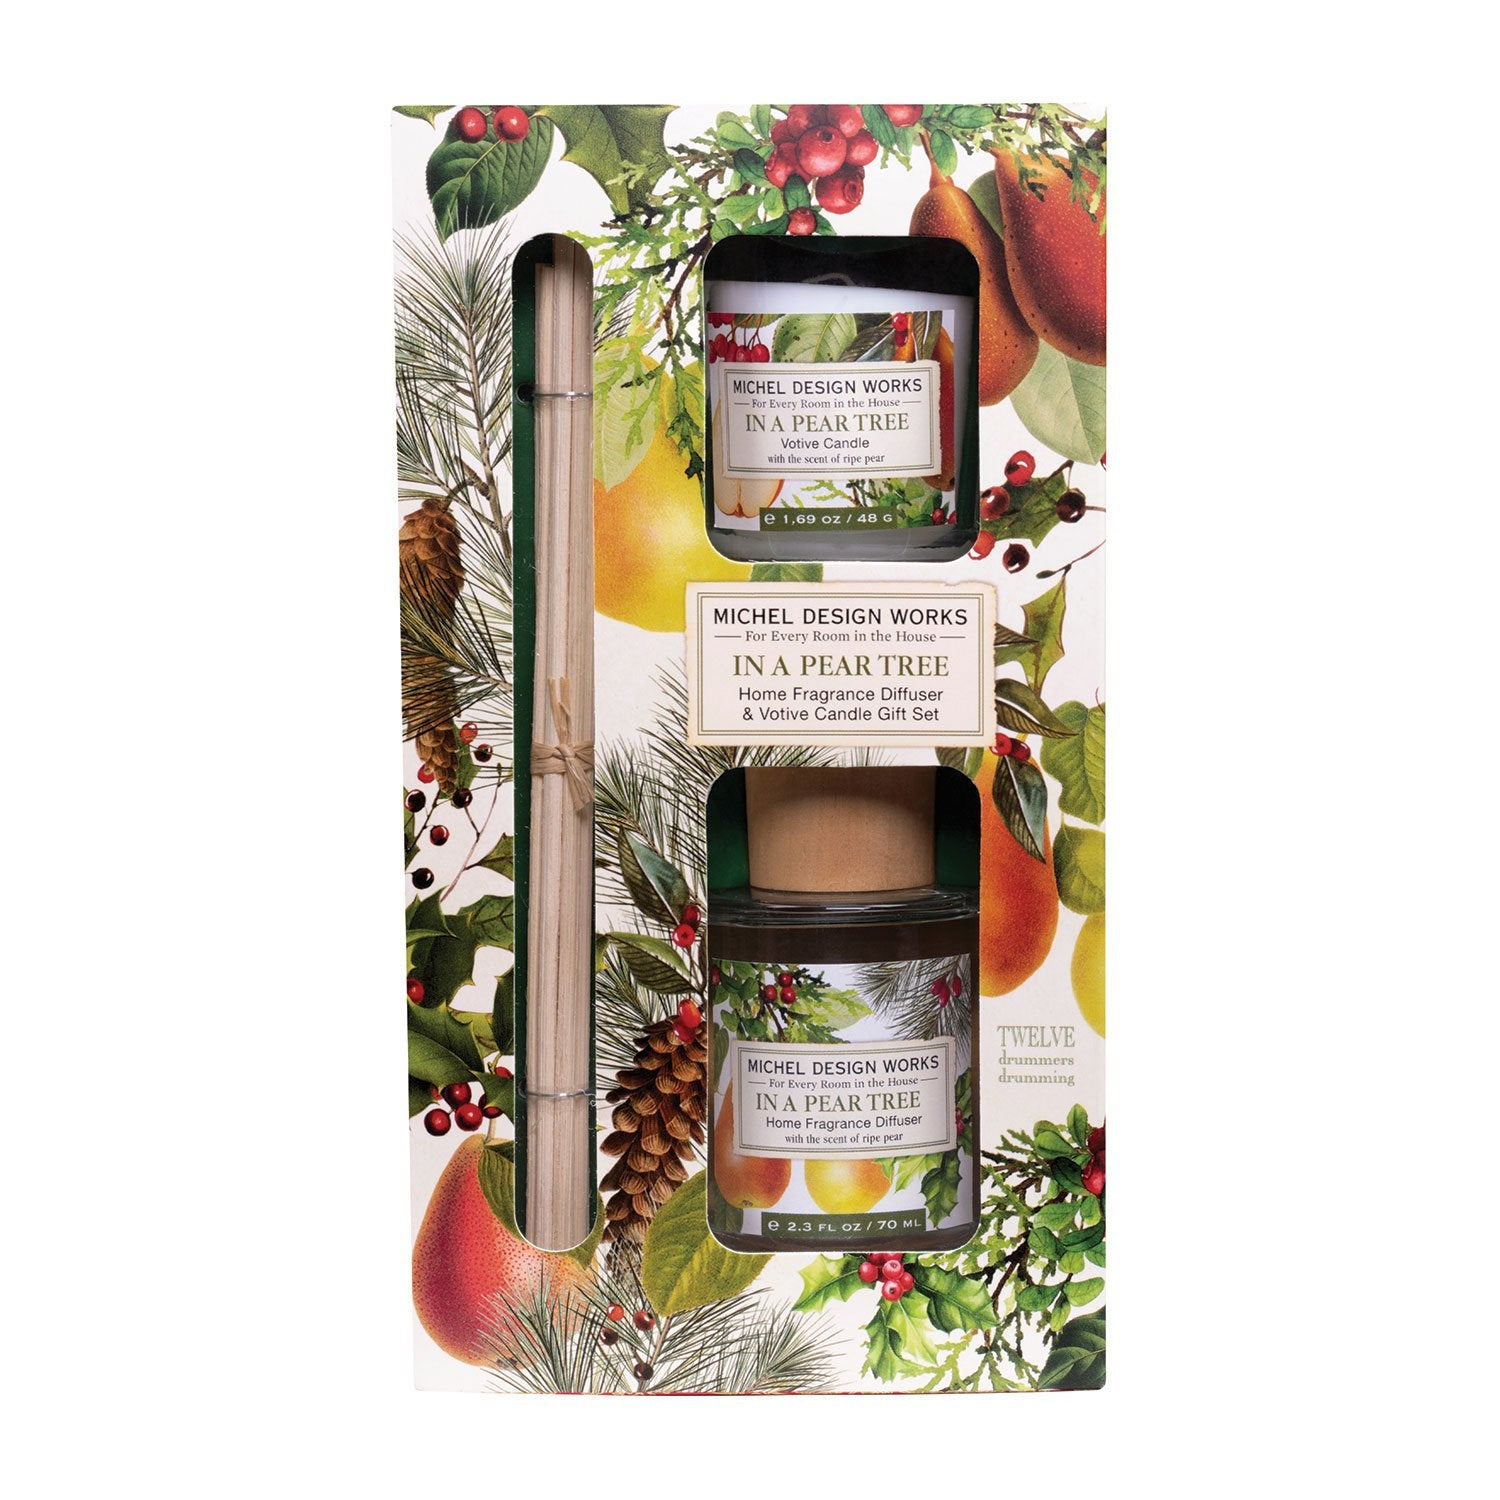 In a Pear Tree Home Fragrance Diffuser & Votive Candle Gift Set